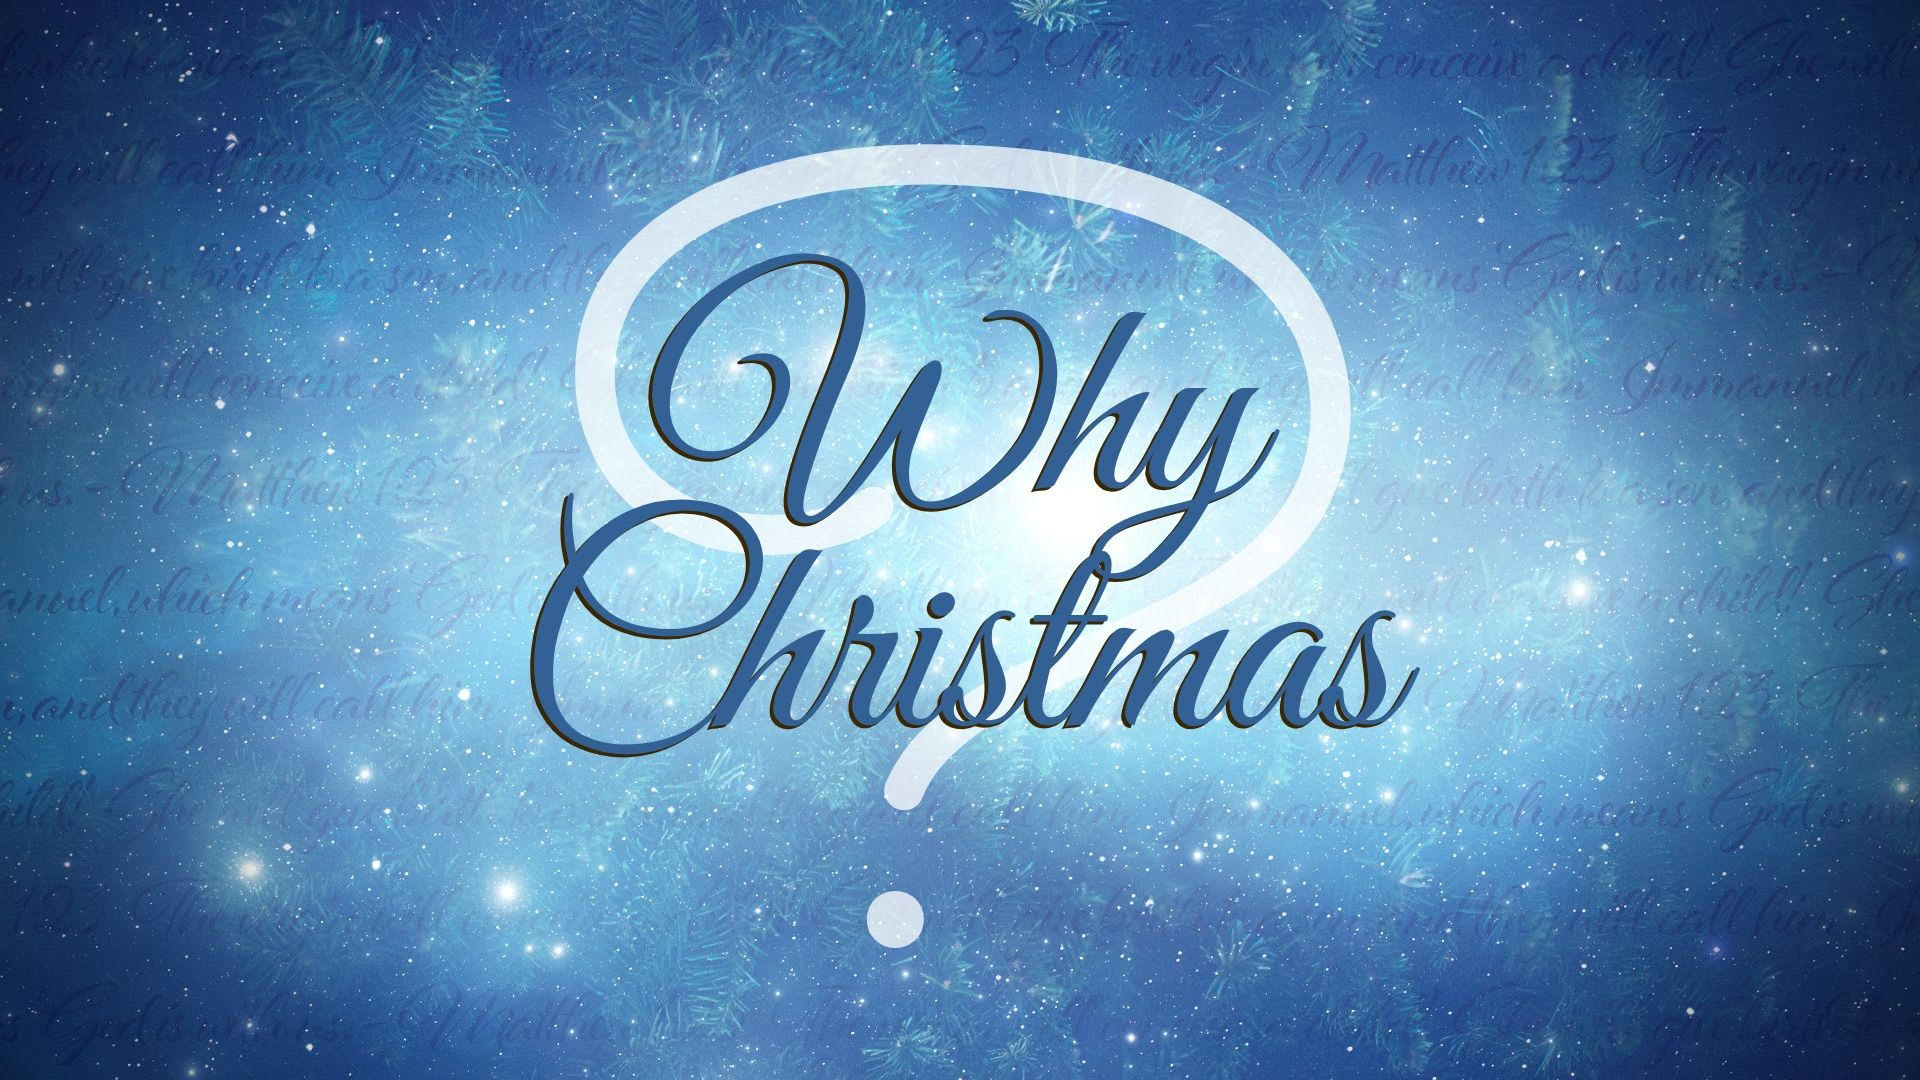 SERMON – Why Christmas? Jesus came to seek and save the lost.